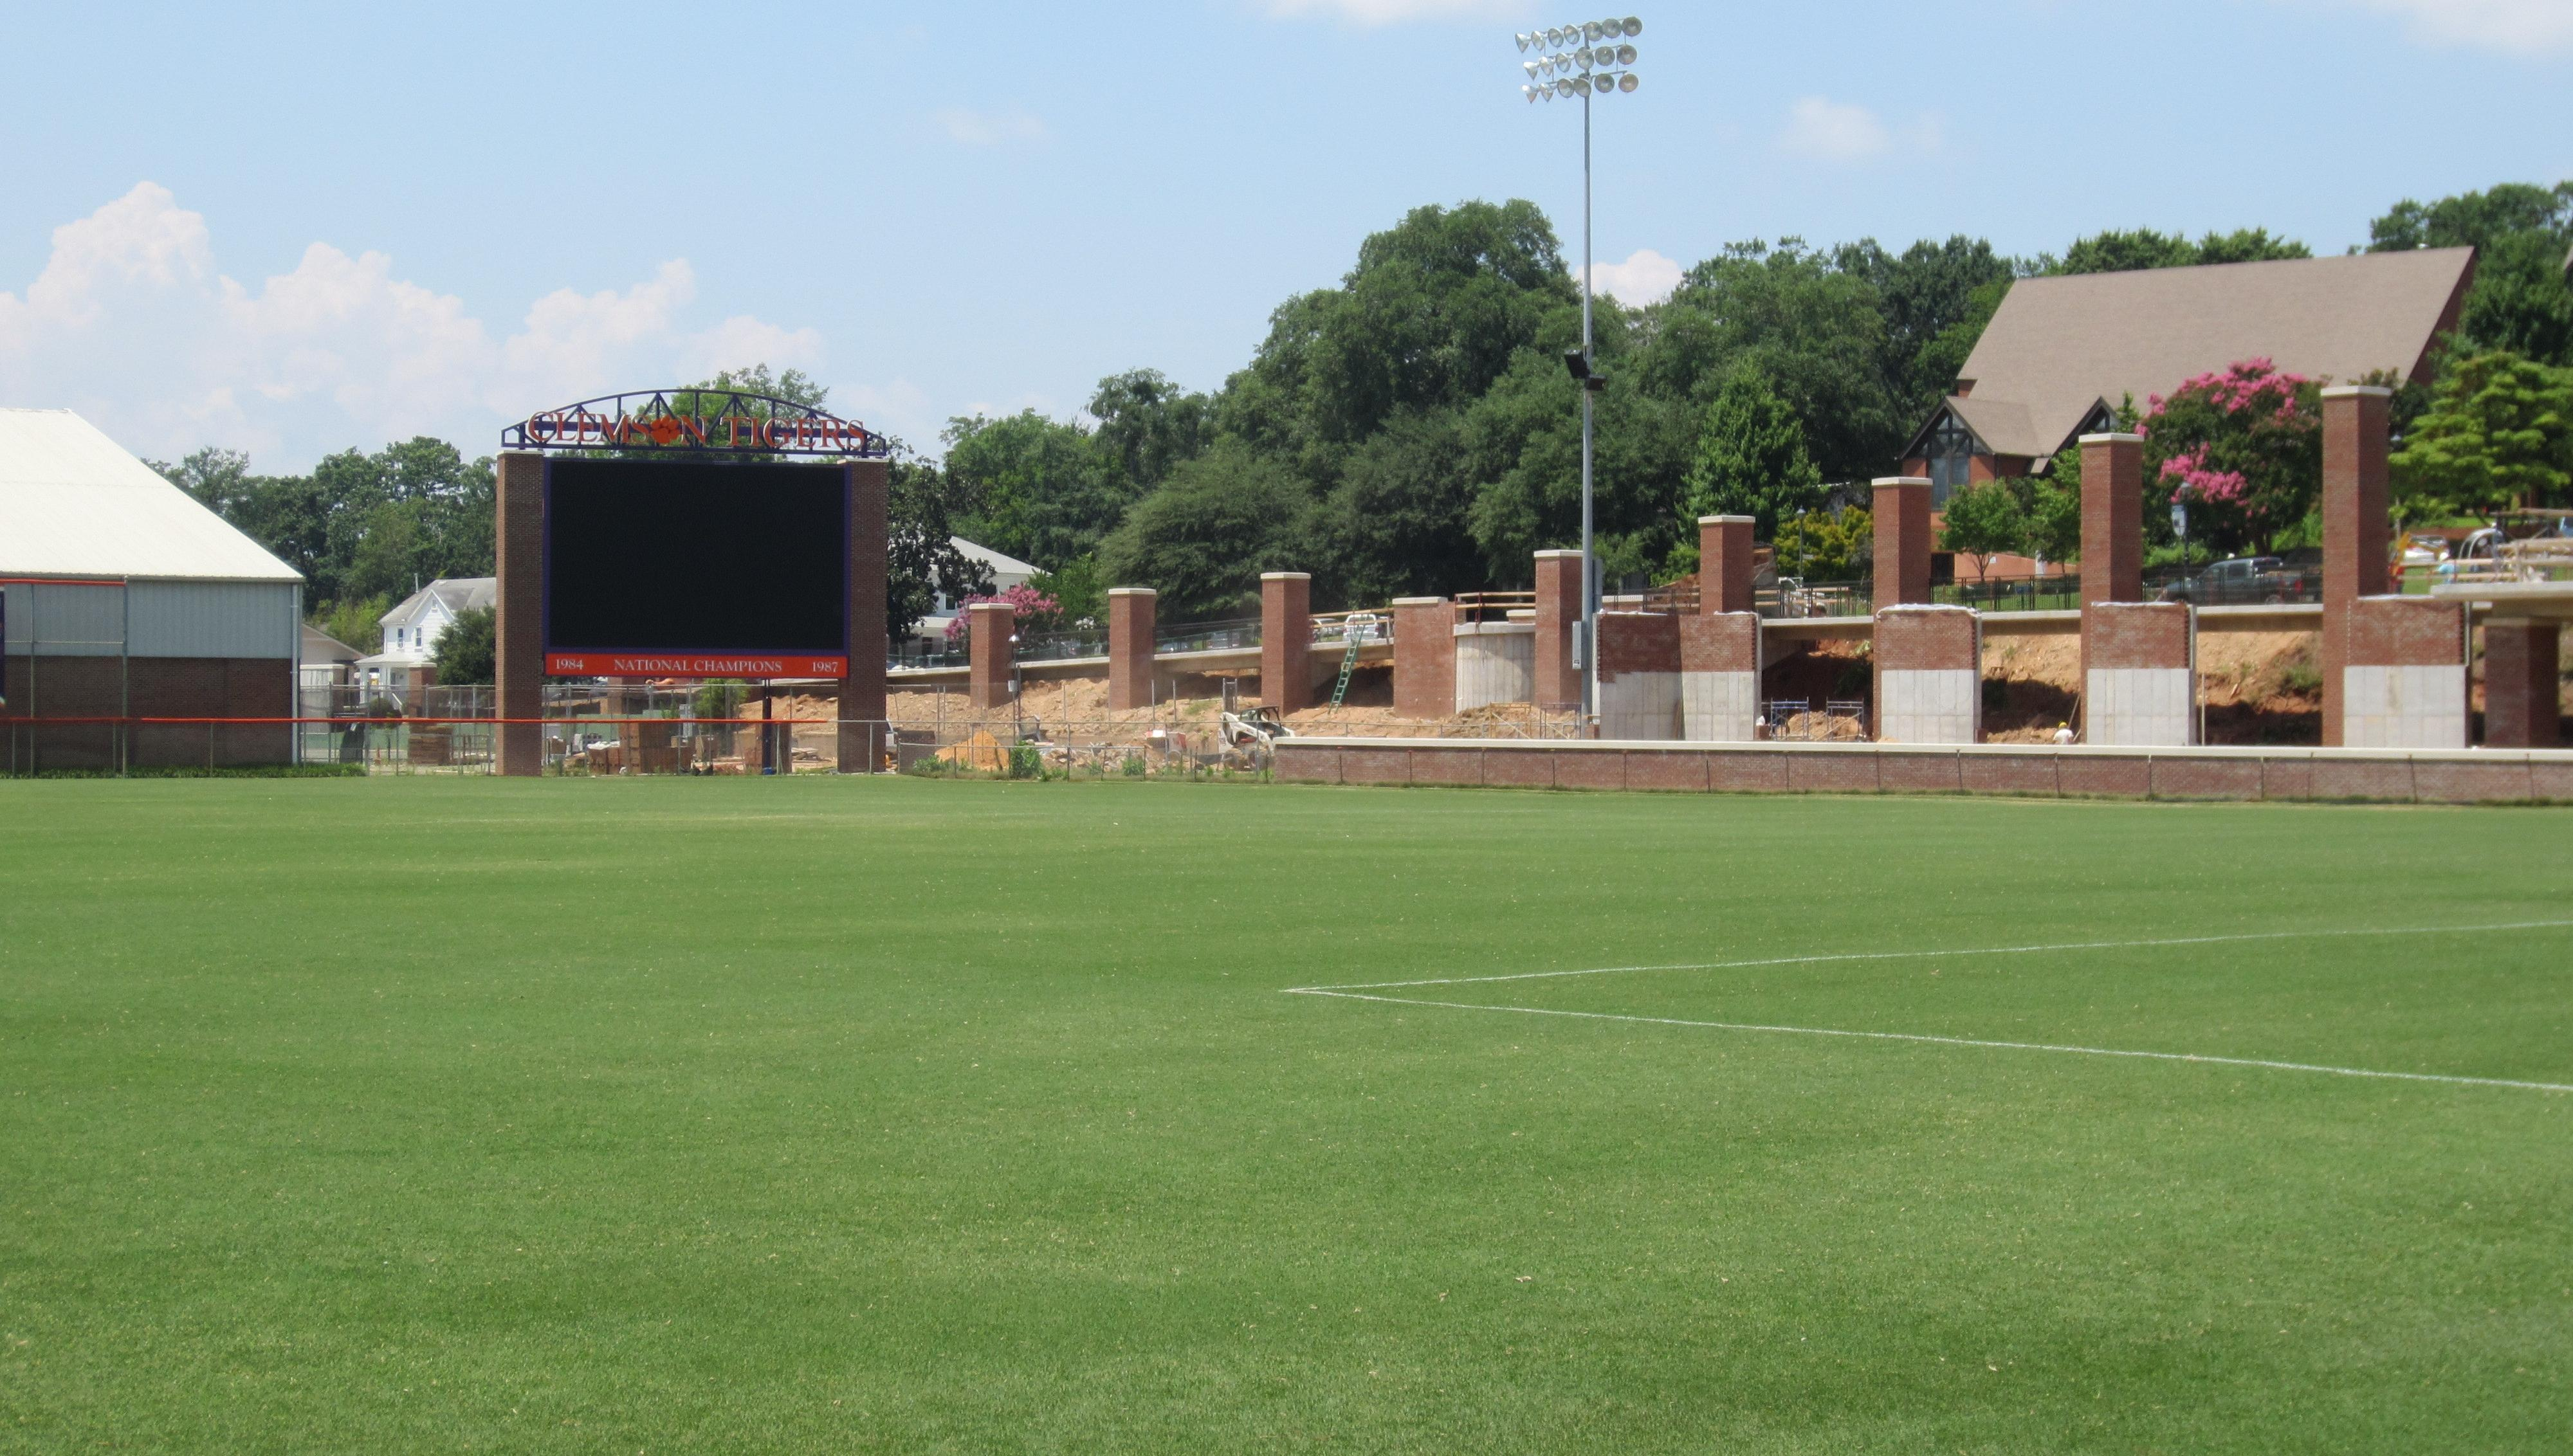 NEW PHOTOS ADDED 7/19 – Gallery: Historic Riggs Field Construction Update